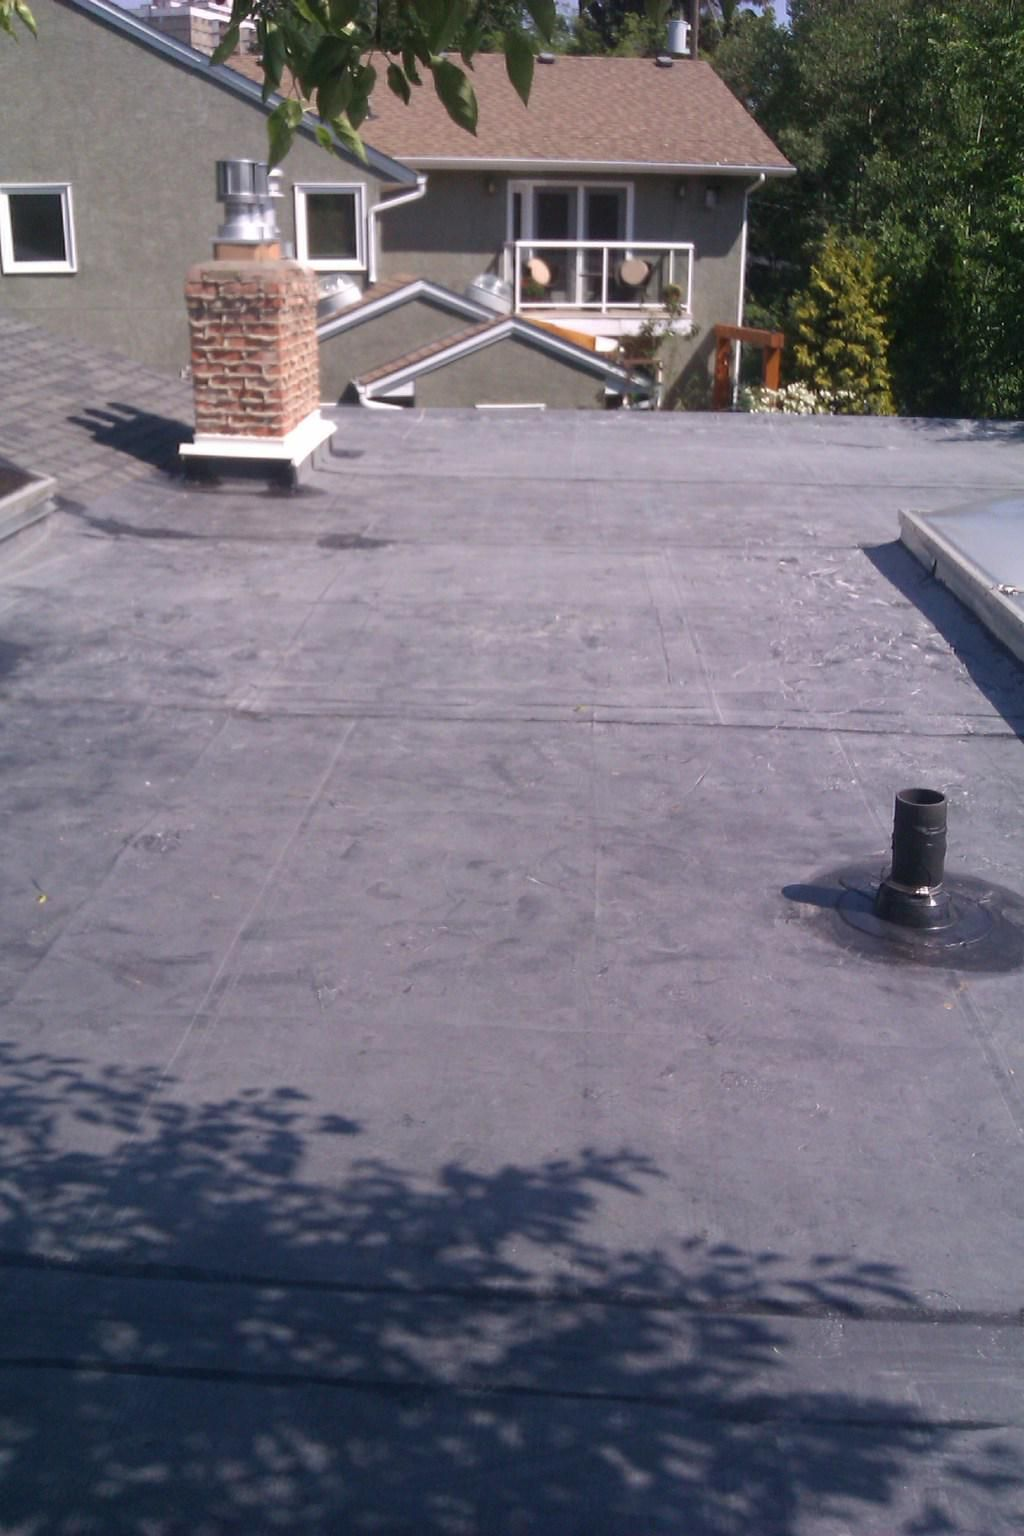 Edmonton Roof Repair On Twitter Flat Roof Flat Roof Replacement Epdm Flat Roof